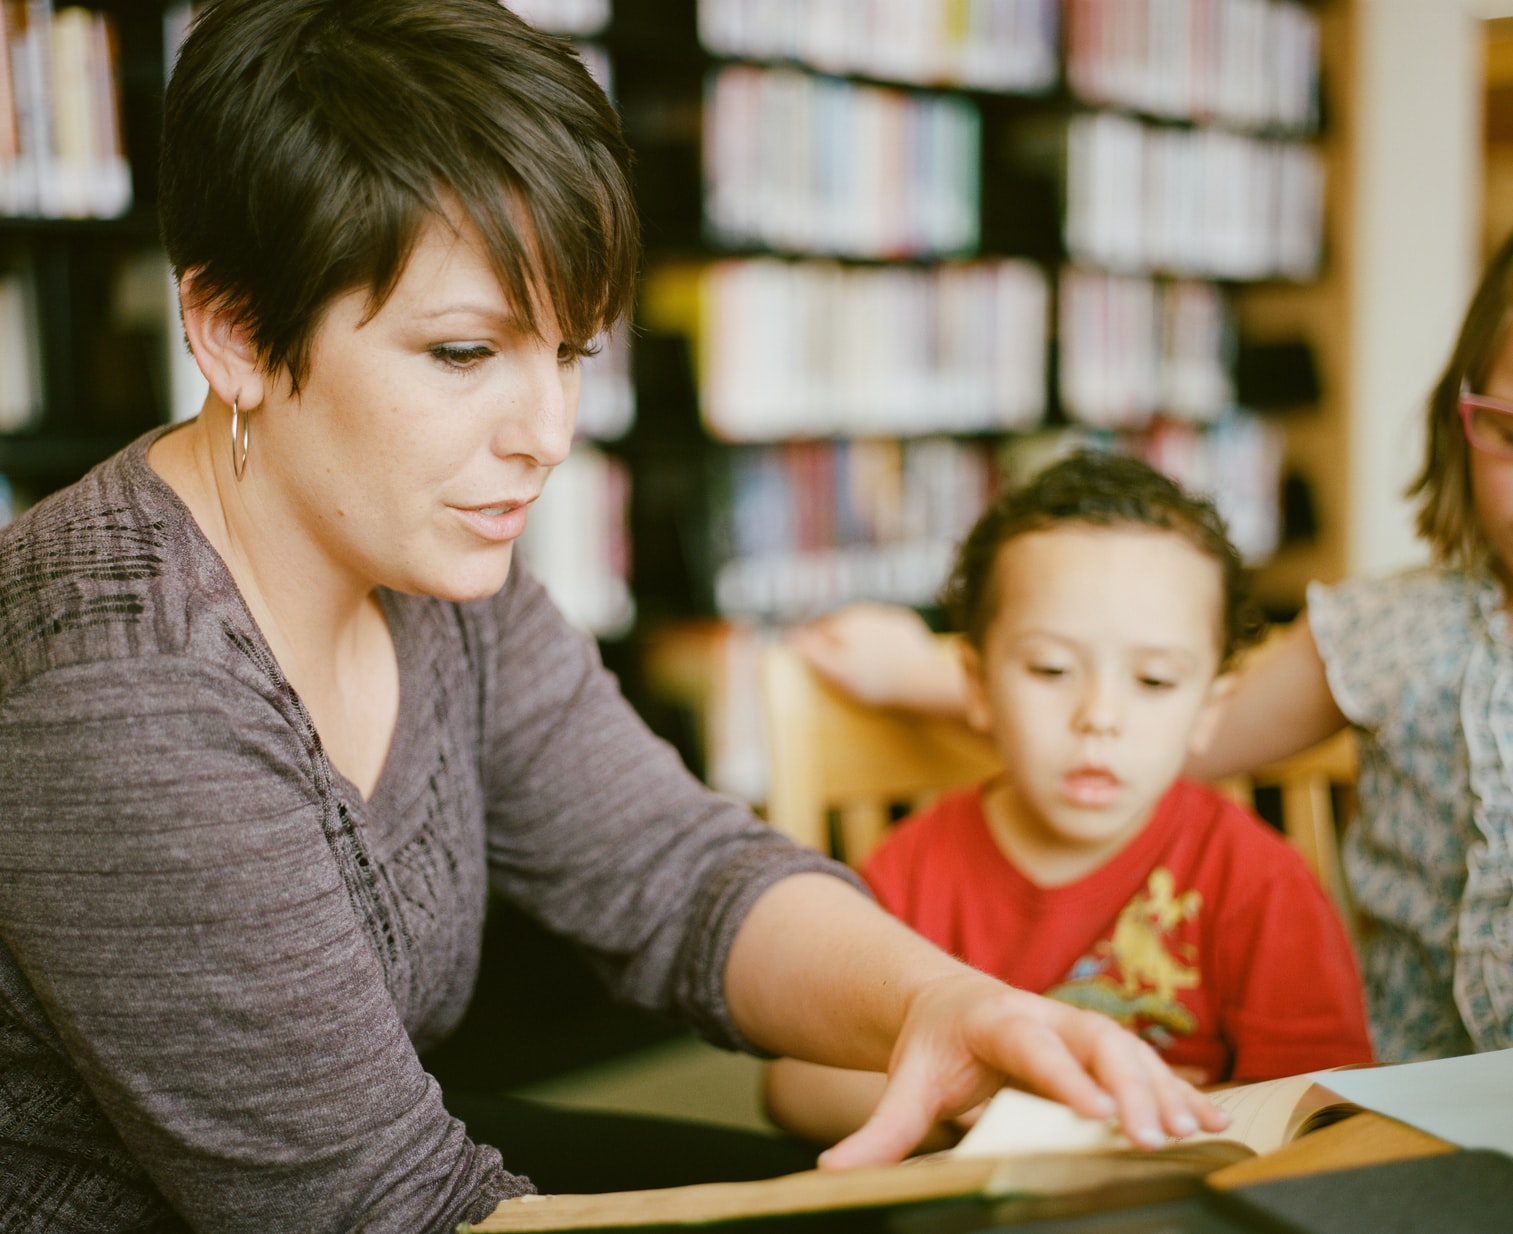 Tuition Assignments Agency – Benefits of Having Private Home Tuition